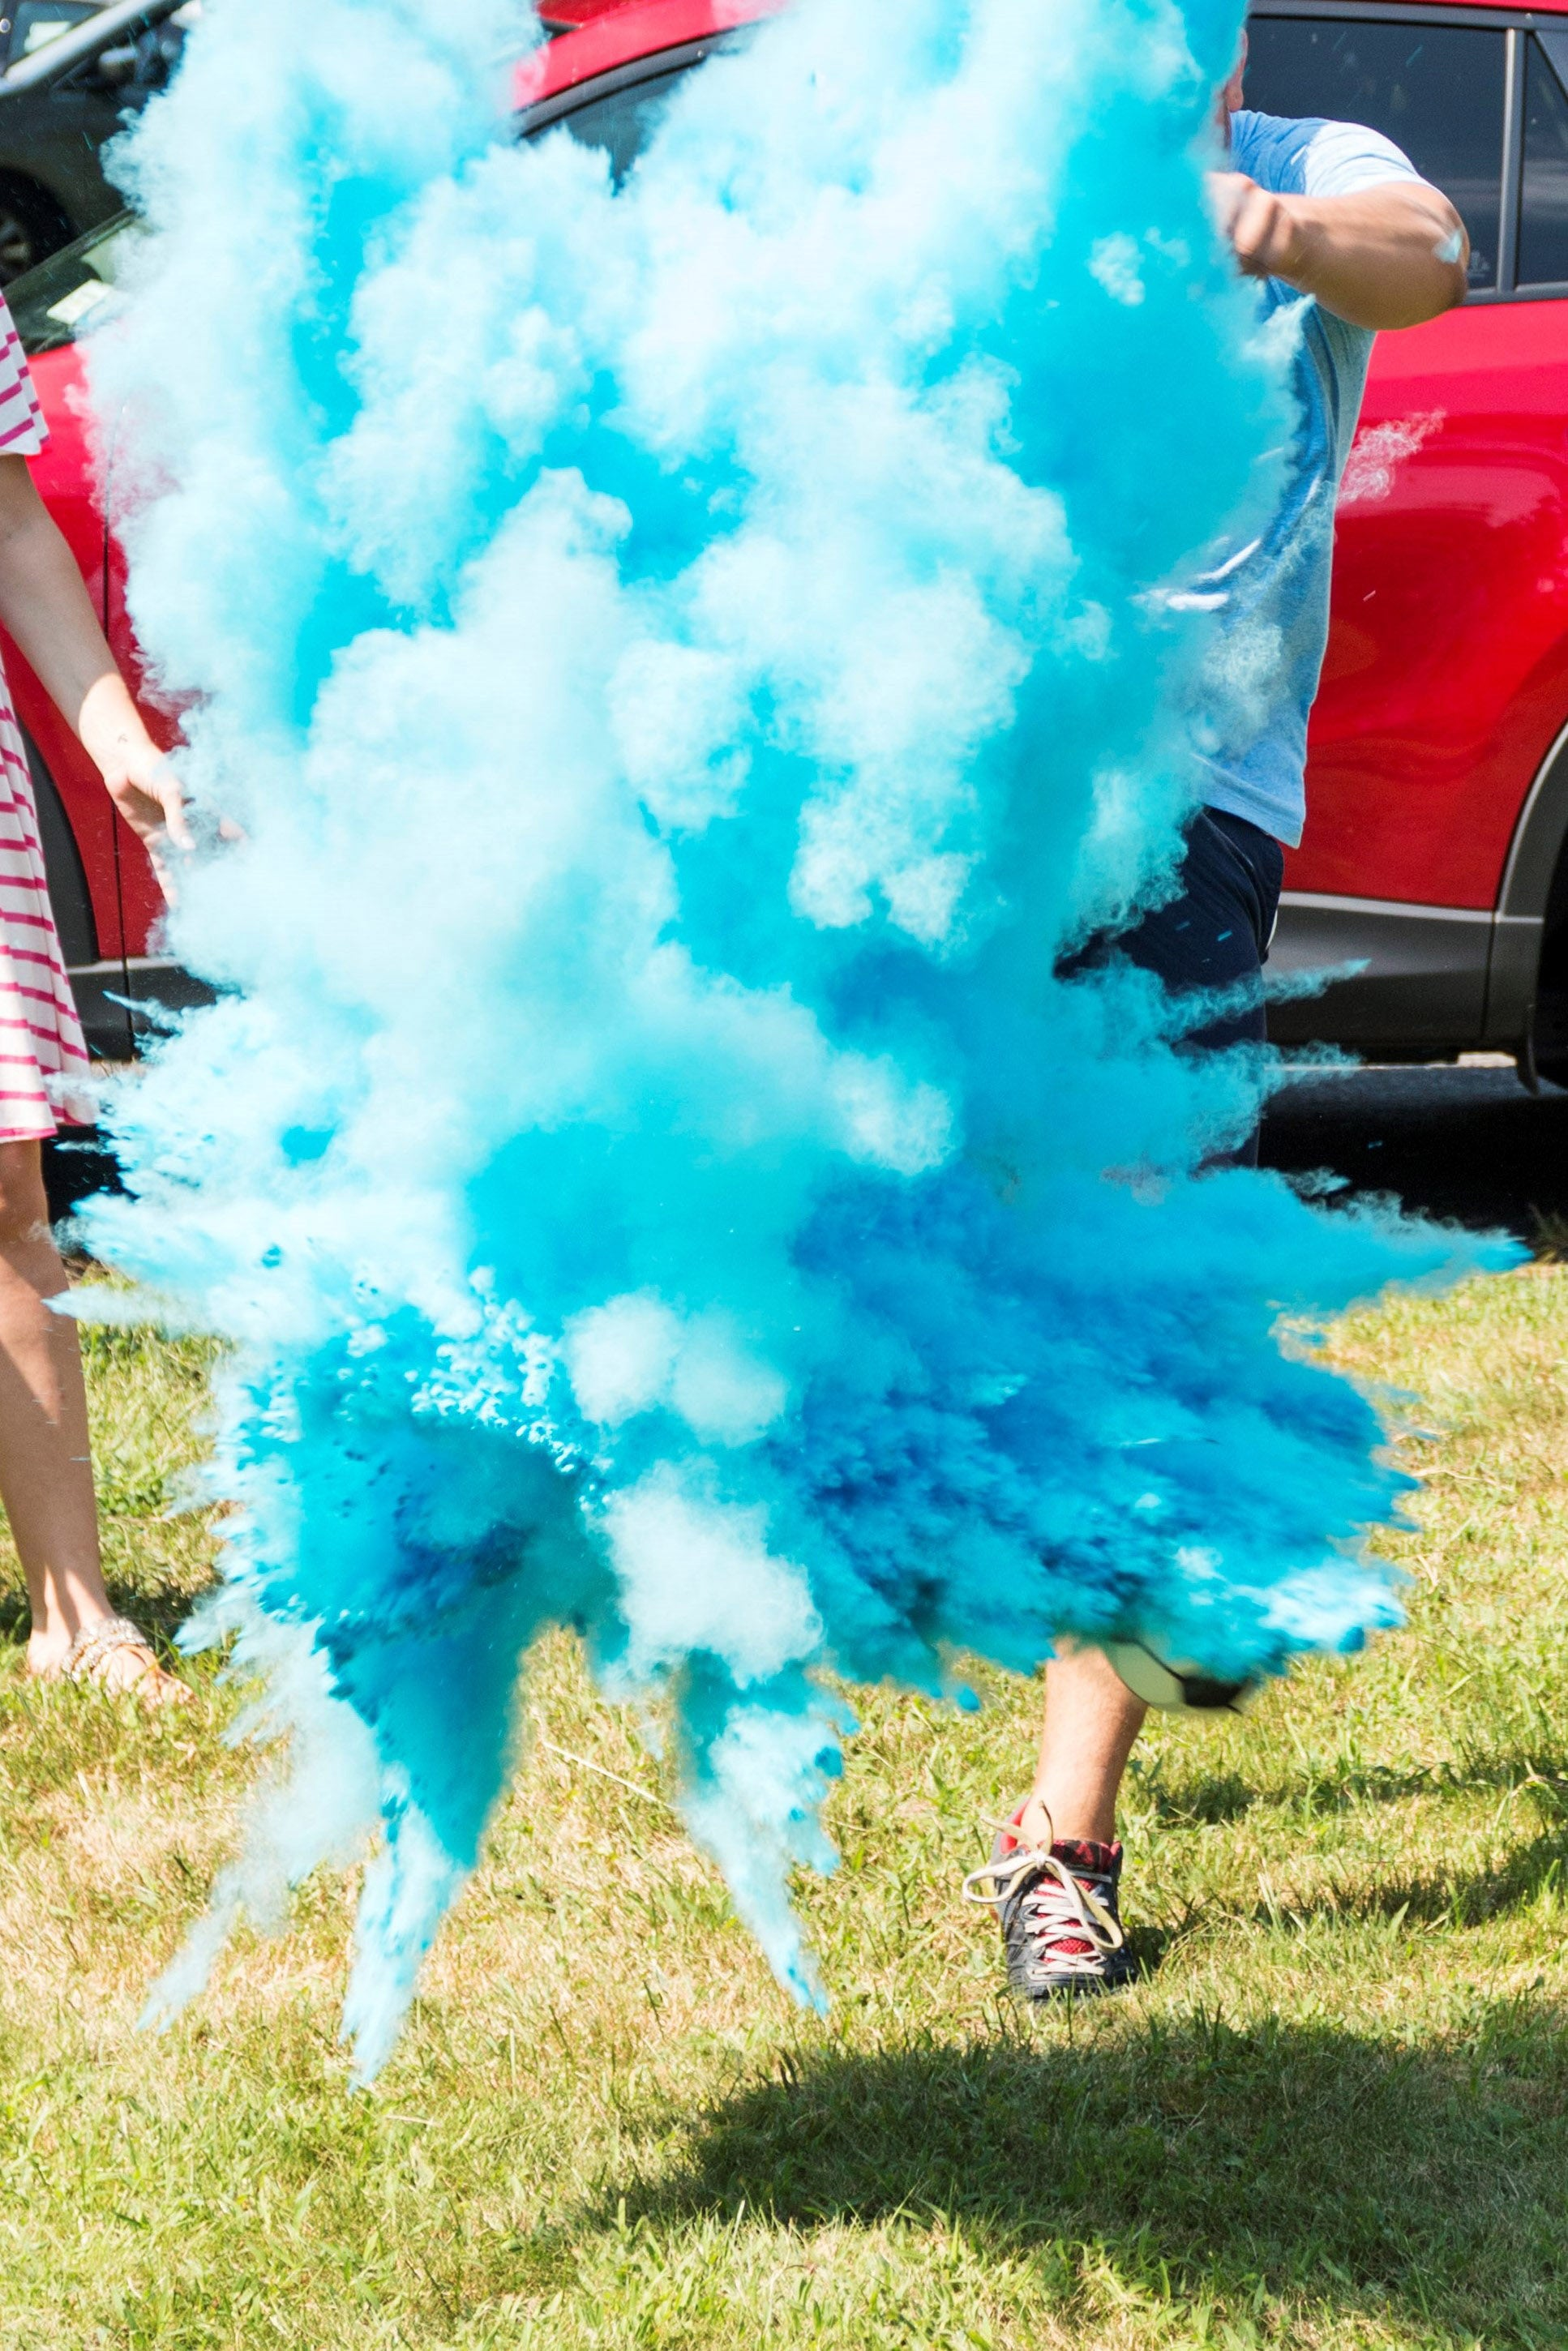 A man blowing himself up with blue gender smoke.